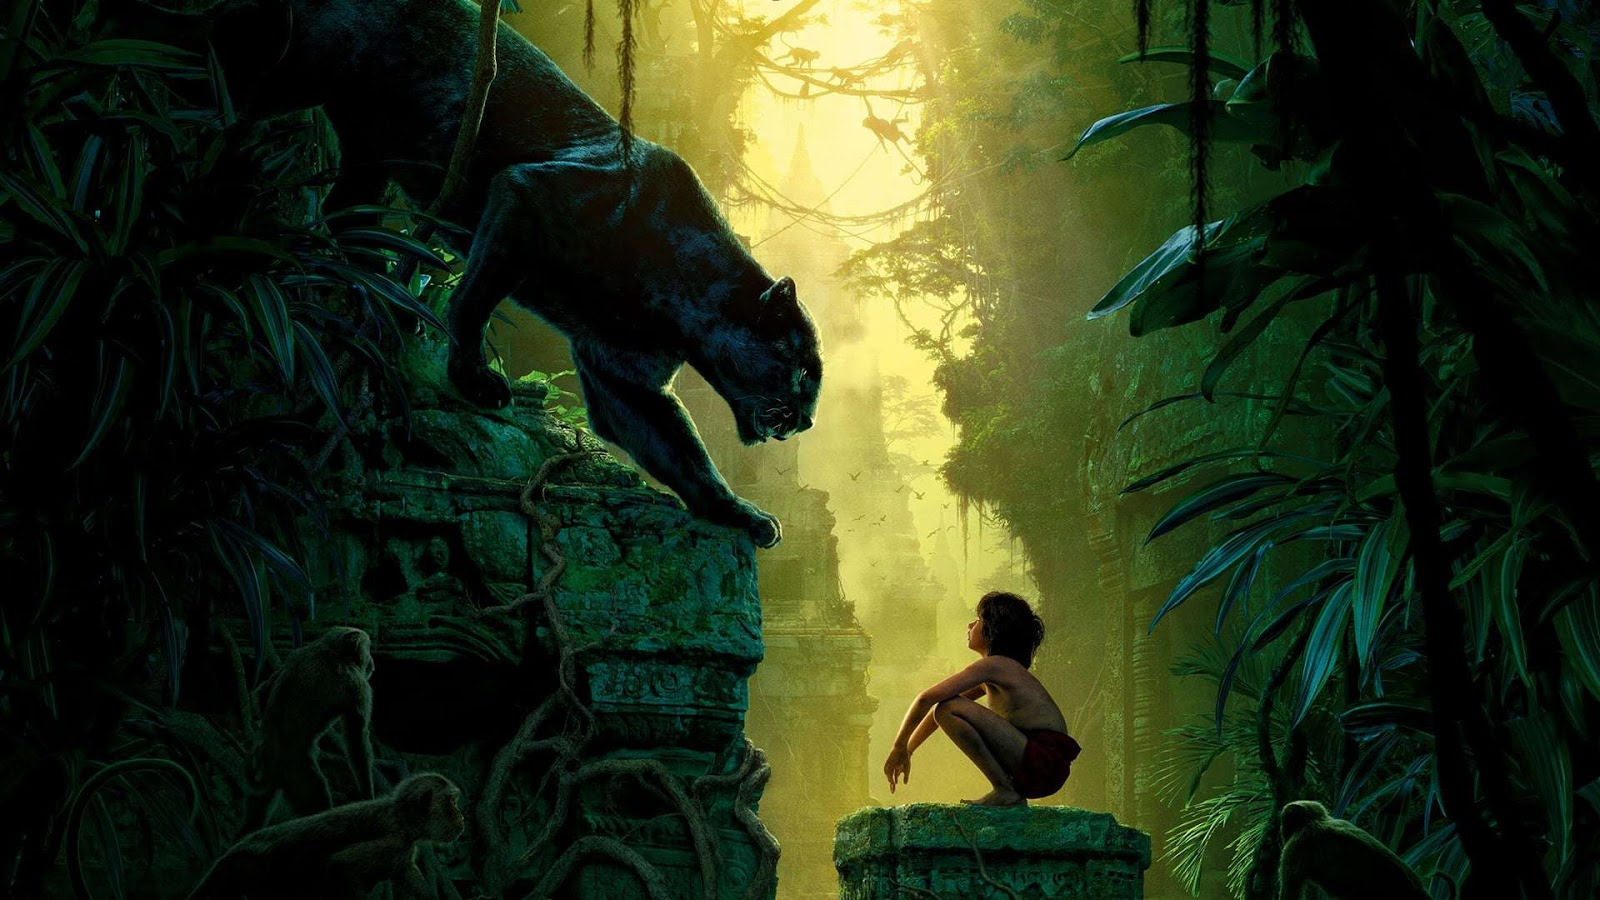 The Jungle Book (2016) -  Neel Sethi as Mowgli, the orphaned human boy, and Ben Kingsley as Bagheera, the black panther